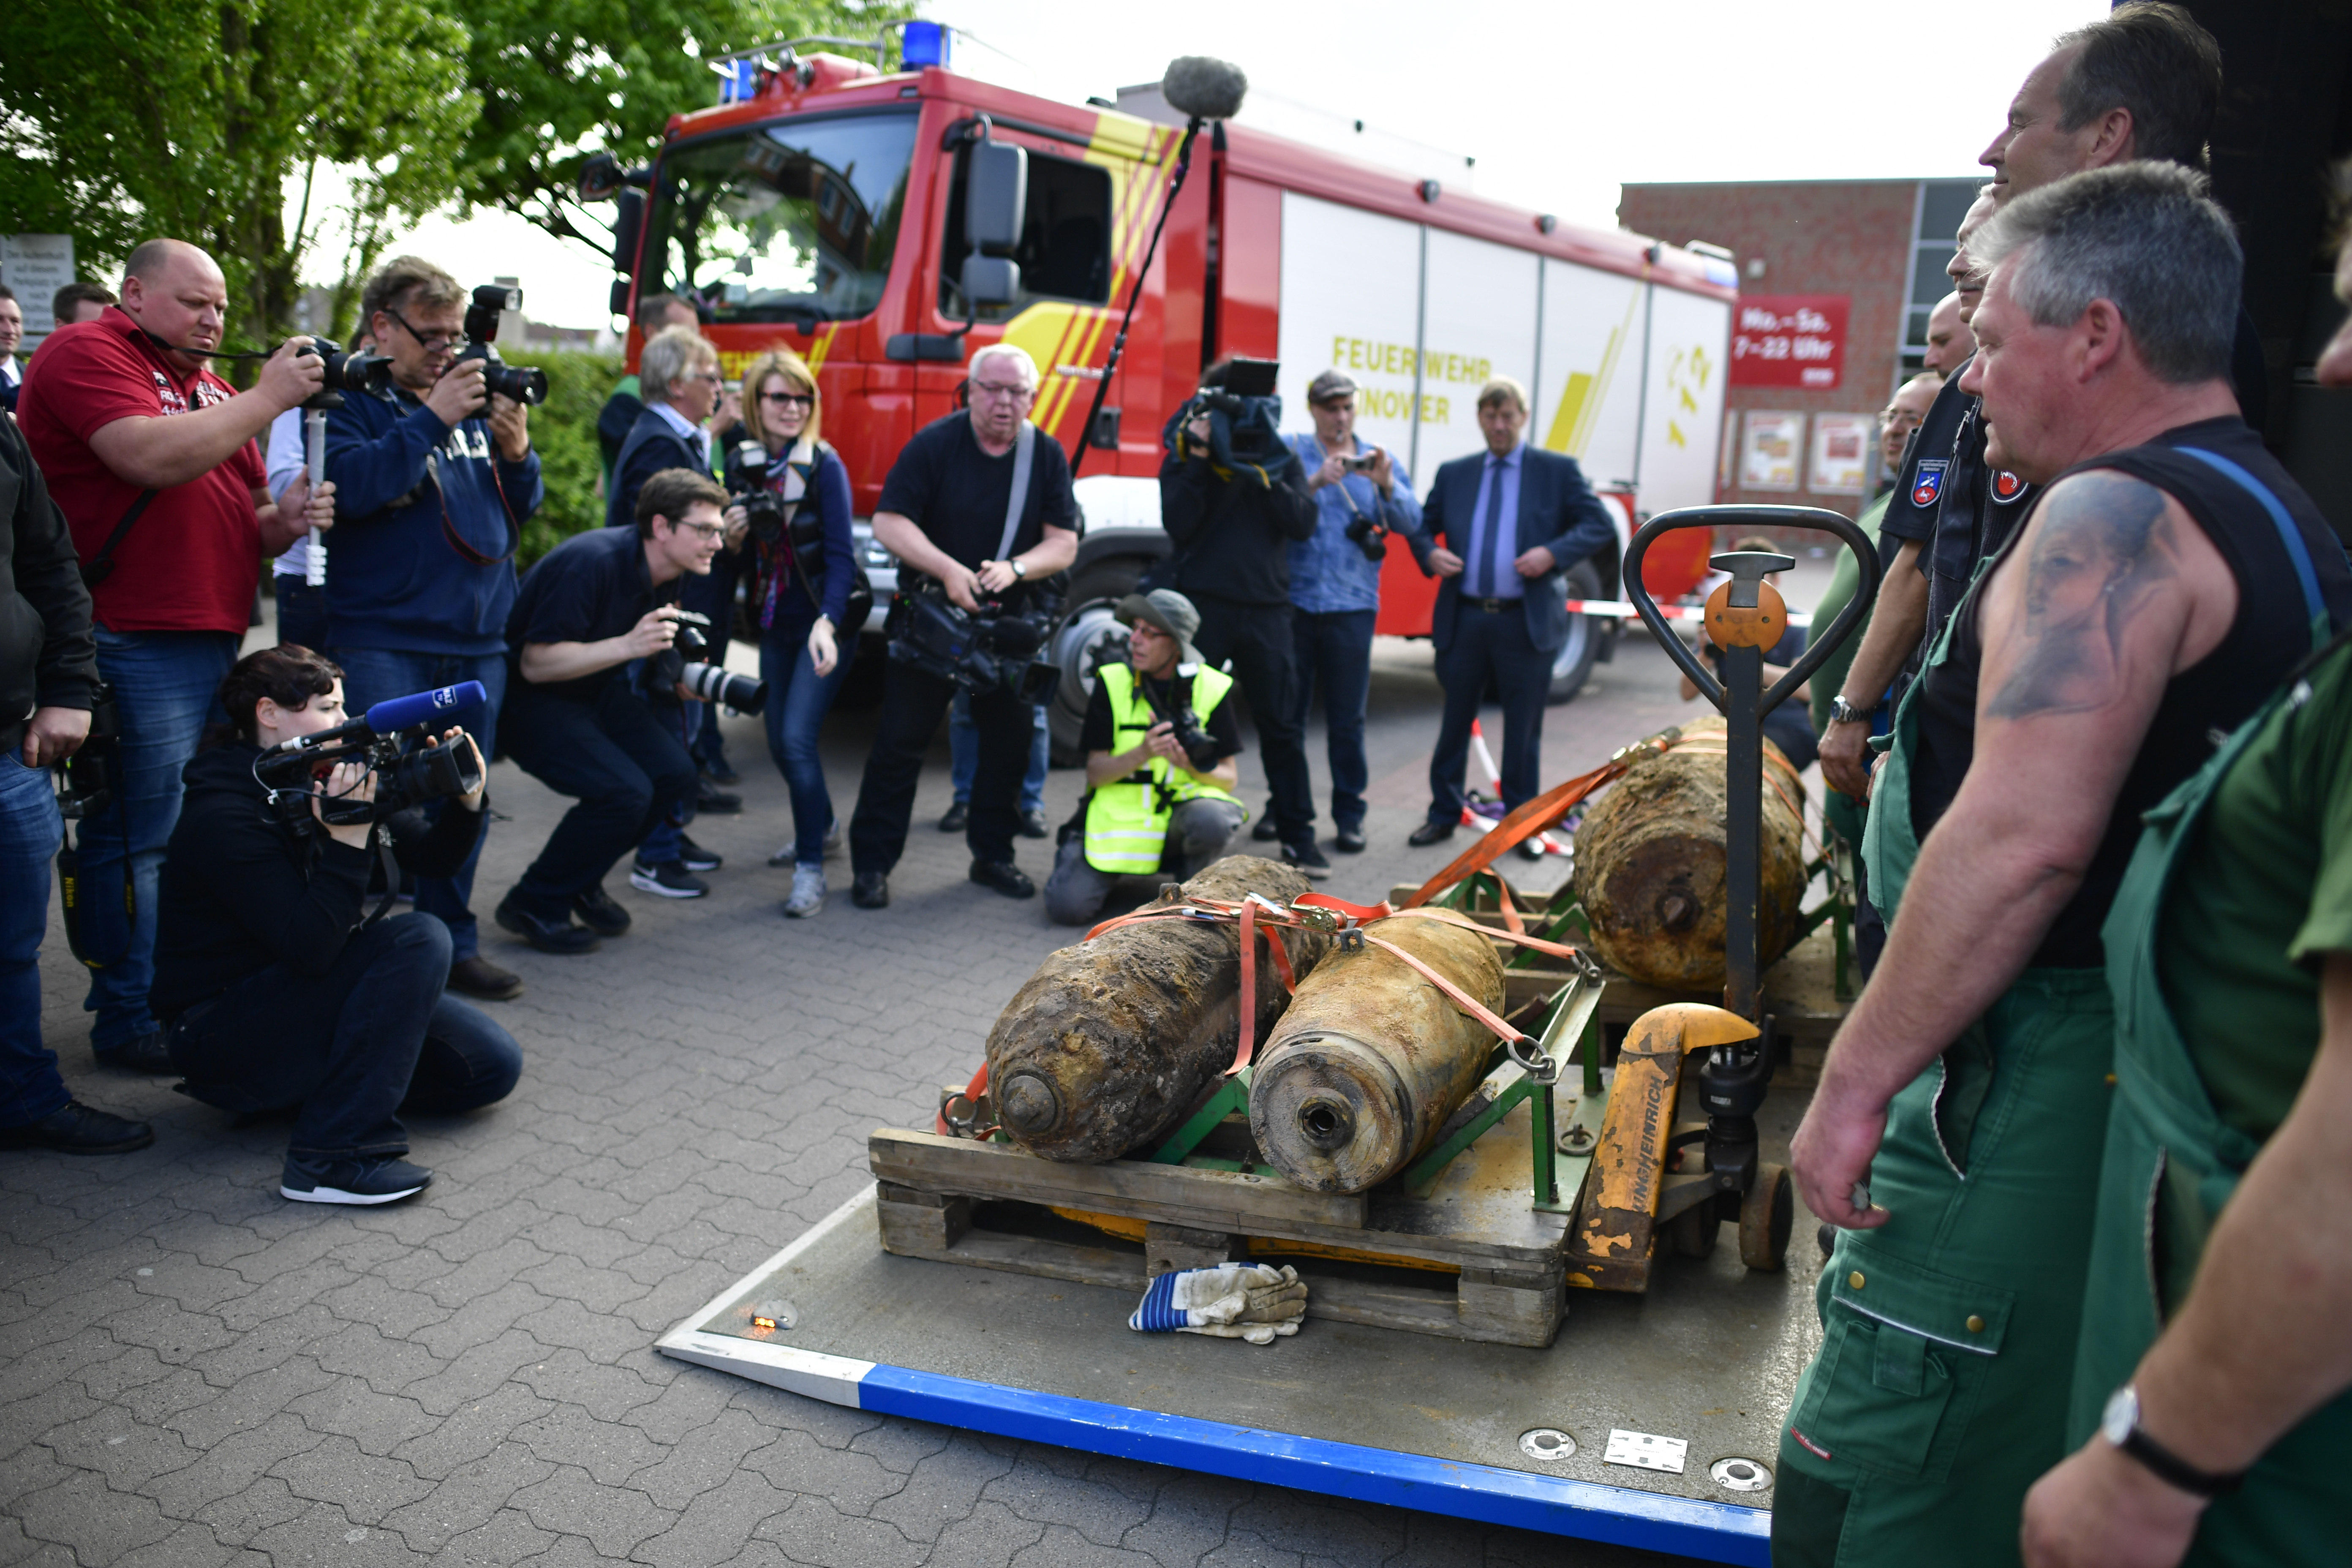 WWII bomb forcing prison evacuation in Regensburg, Germany - CBS News